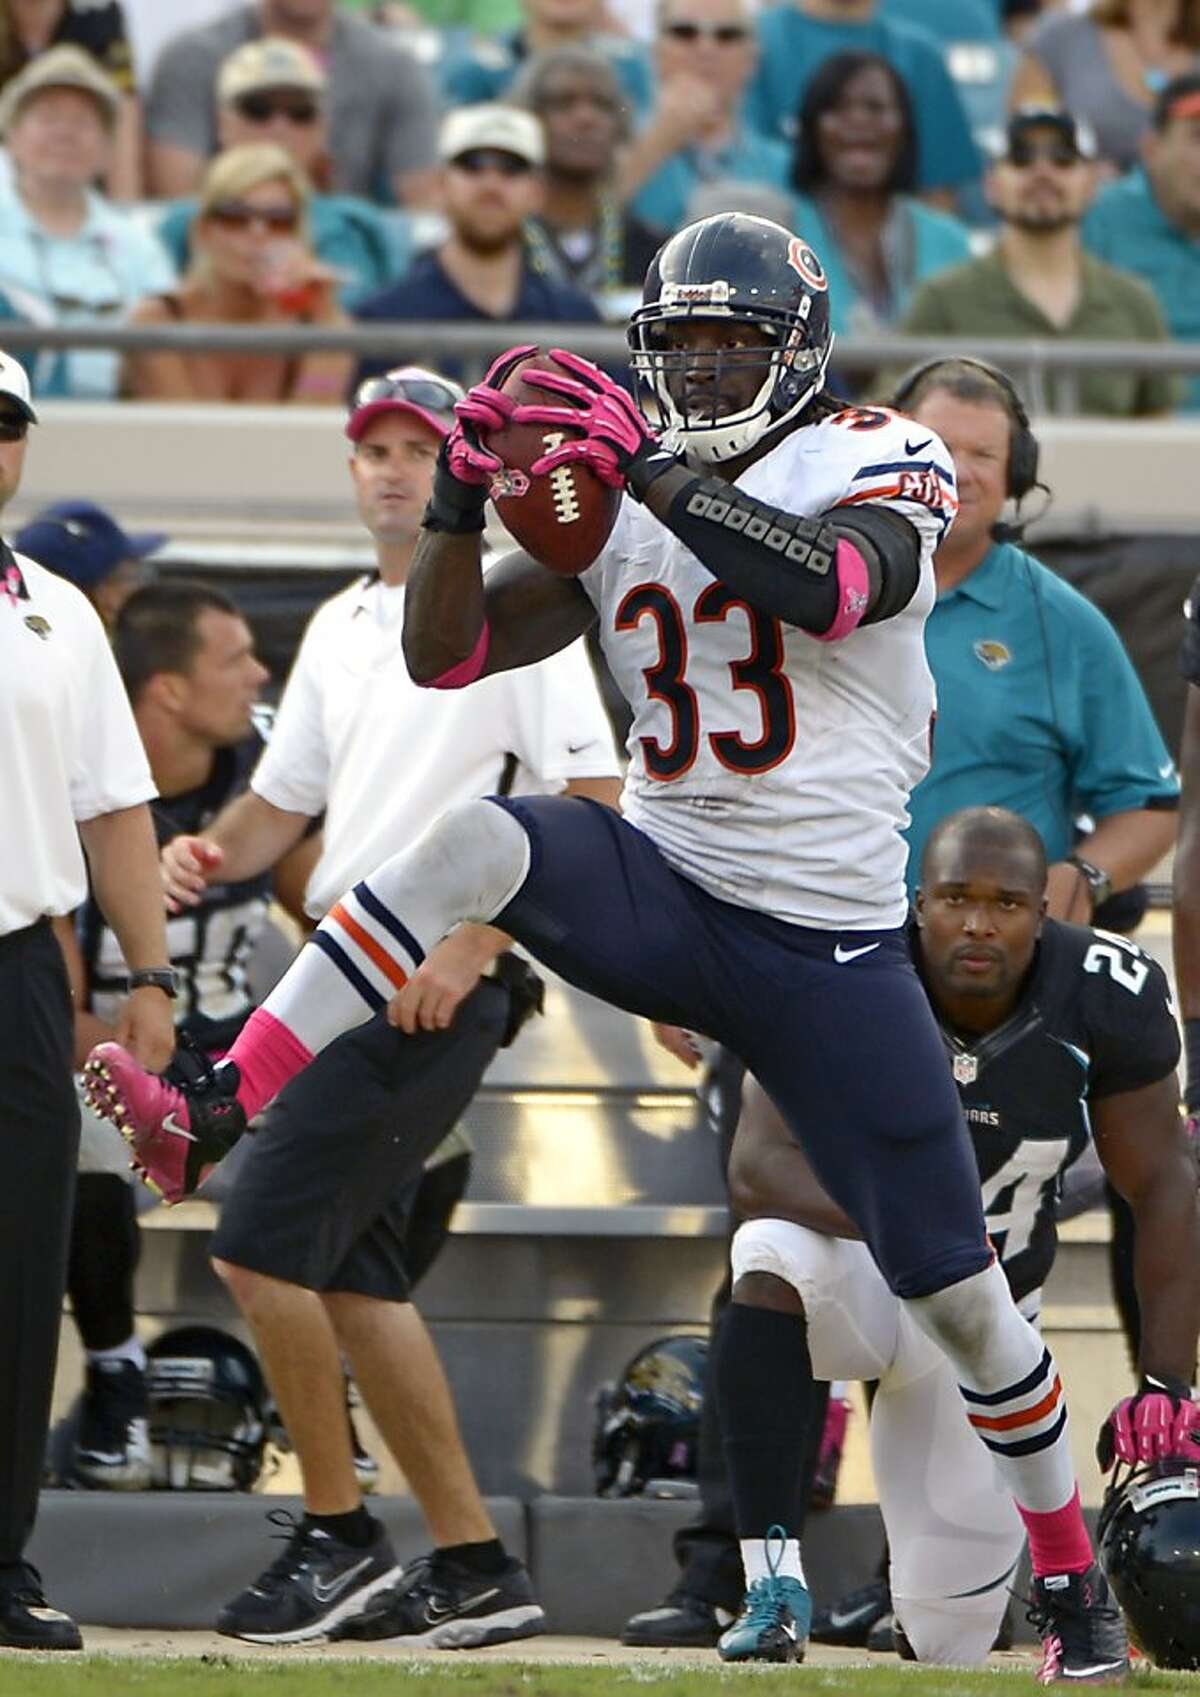 Chicago Bears cornerback Charles Tillman (33) intercepts a Jacksonville Jaguars pass before running it back for a 36-yard touchdown during the second half of an NFL football game, Sunday, Oct. 7, 2012, in Jacksonville, Fla. (AP Photo/Phelan M. Ebenhack)